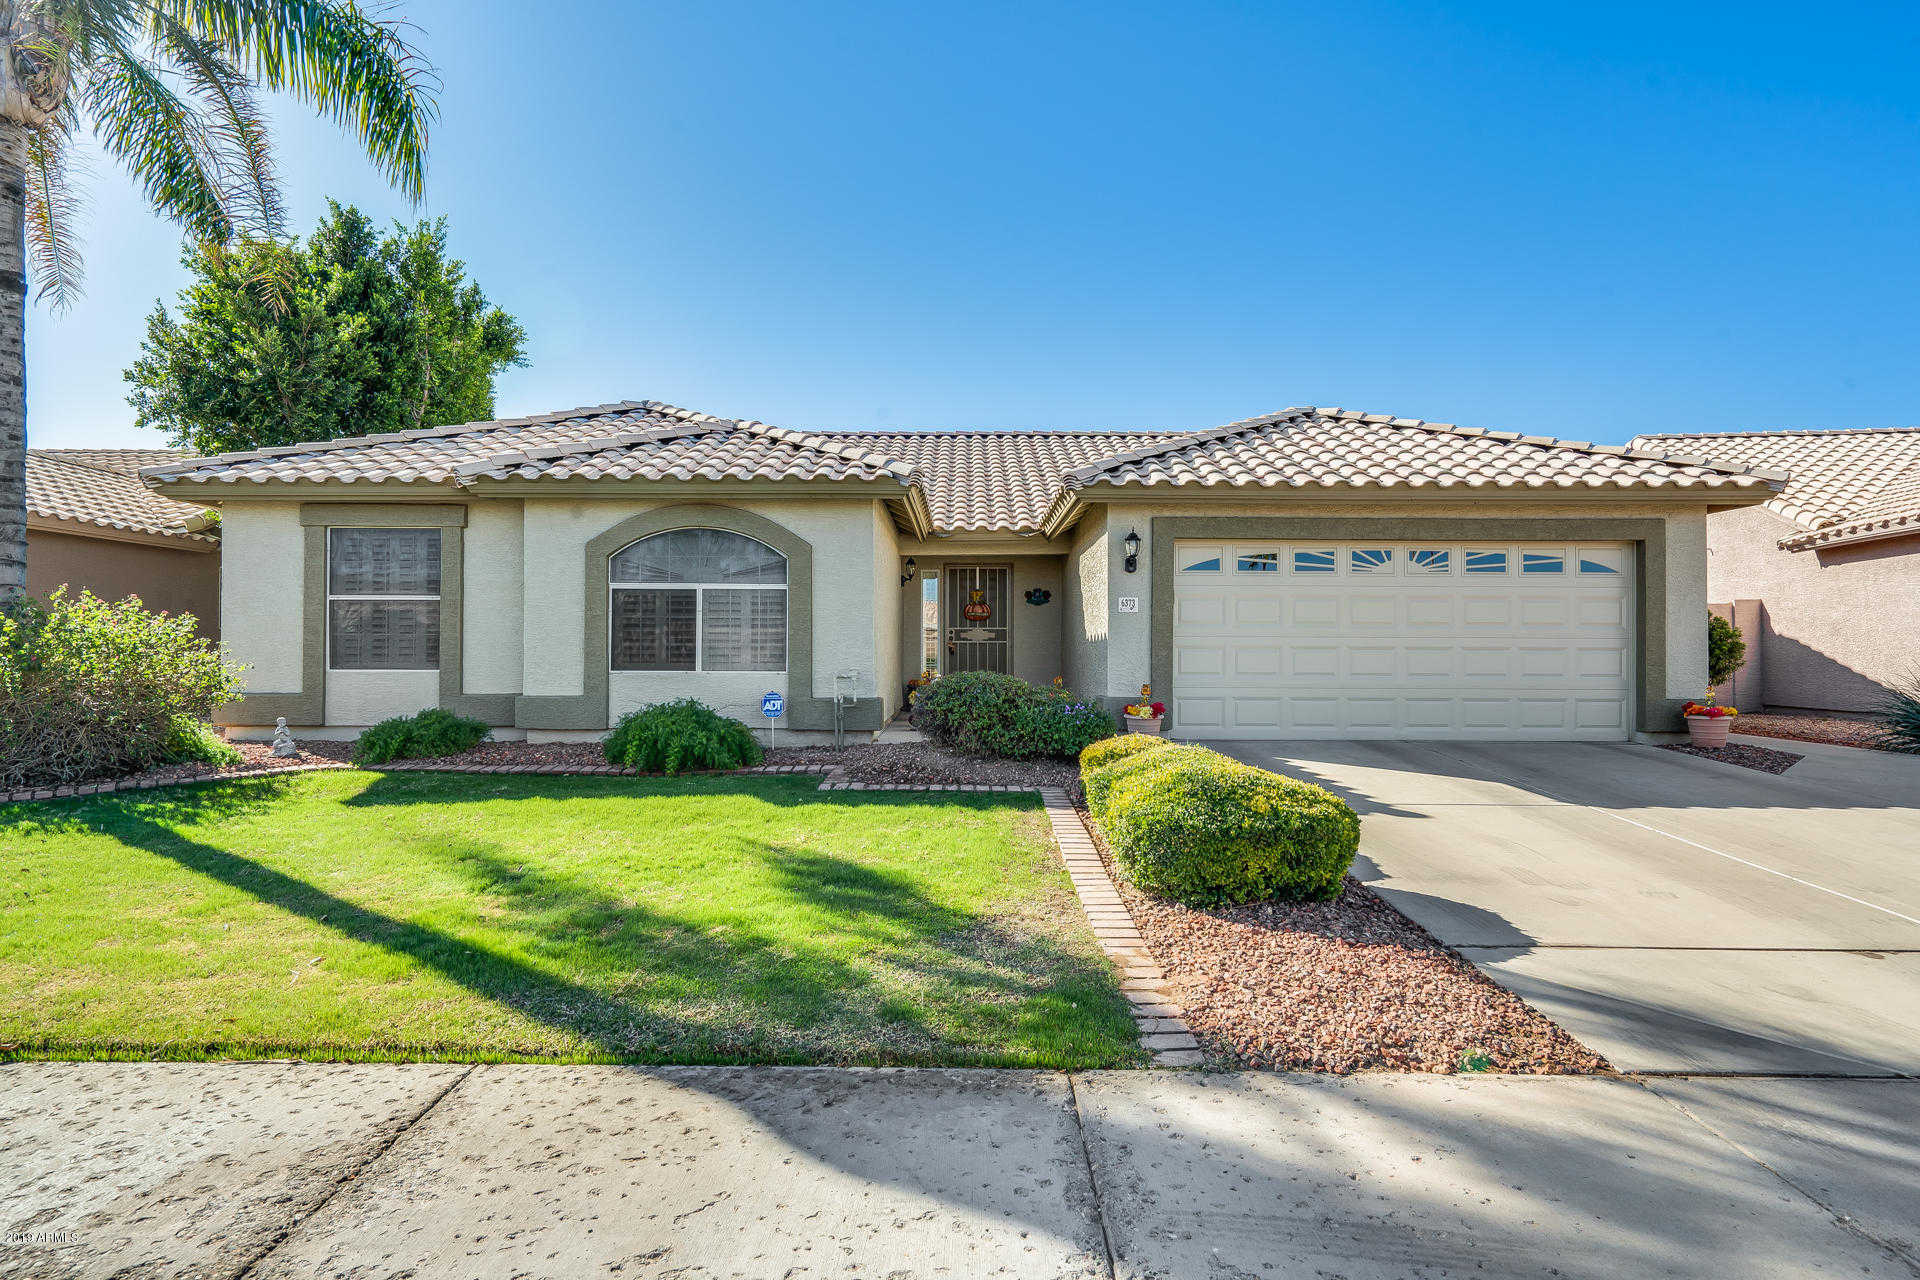 $344,500 - 4Br/2Ba - Home for Sale in Parcel 8 At Arrowhead Ranch, Glendale